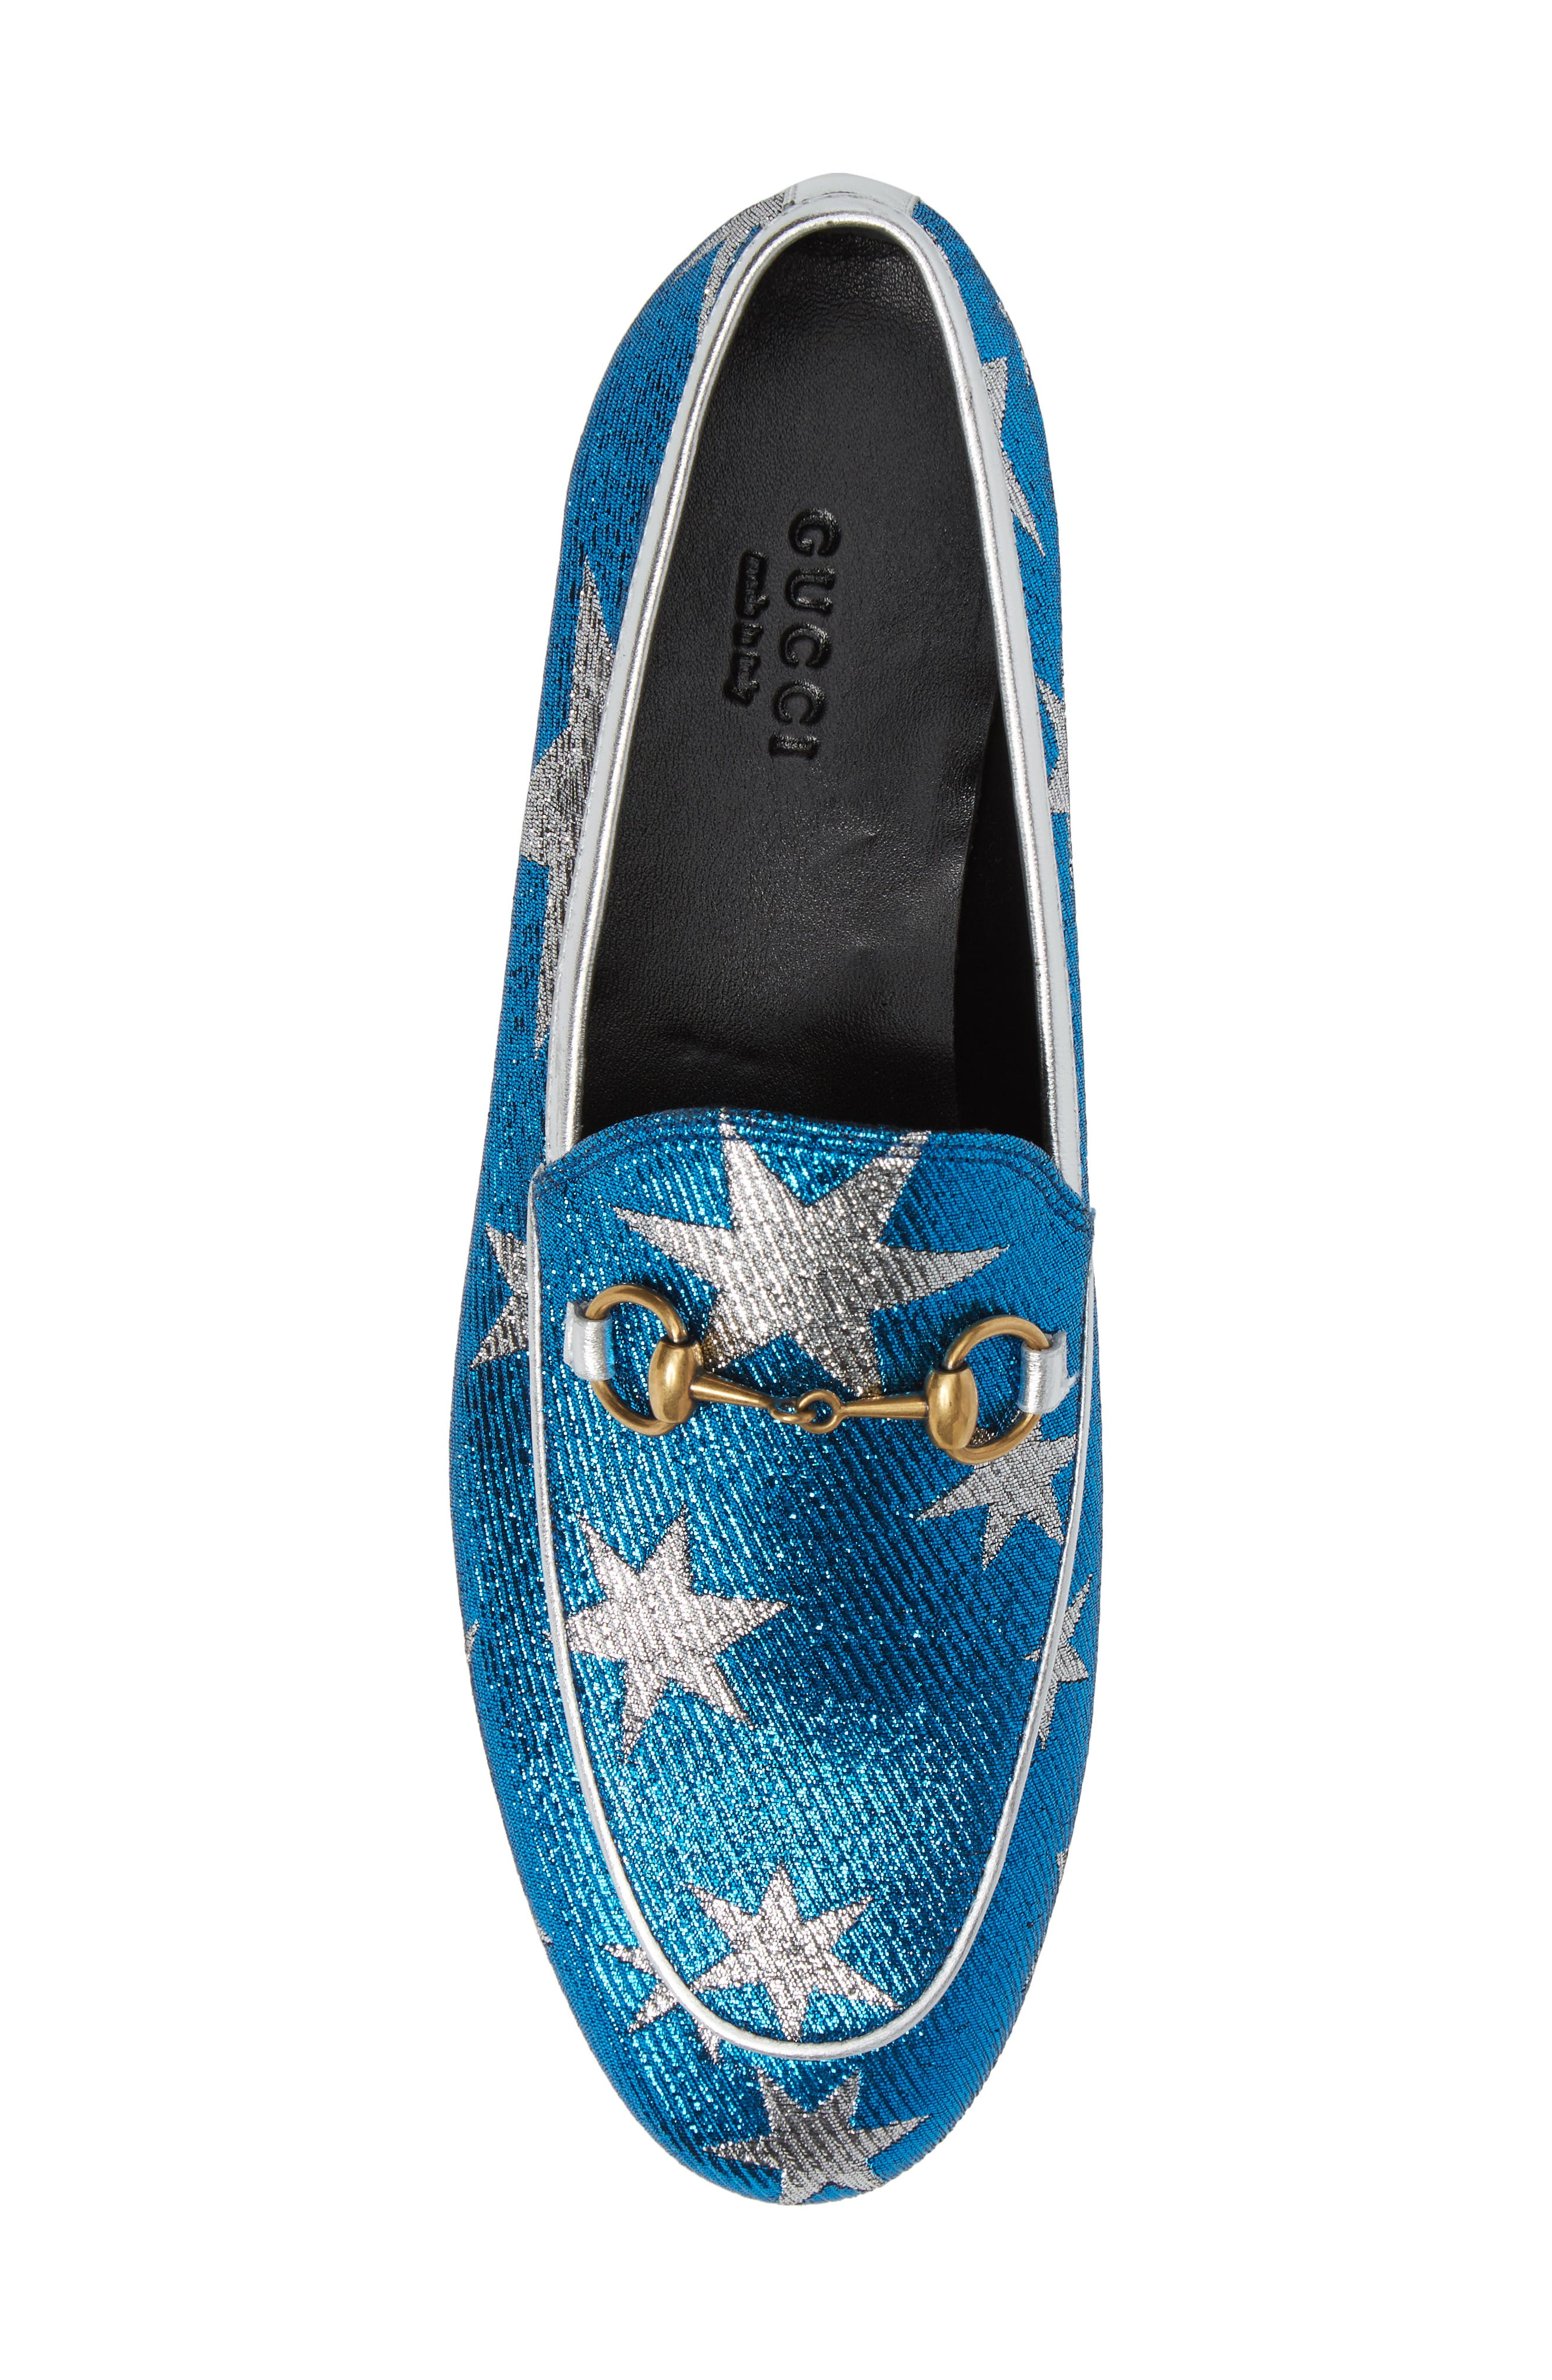 Brixton Star Loafer,                             Alternate thumbnail 5, color,                             424